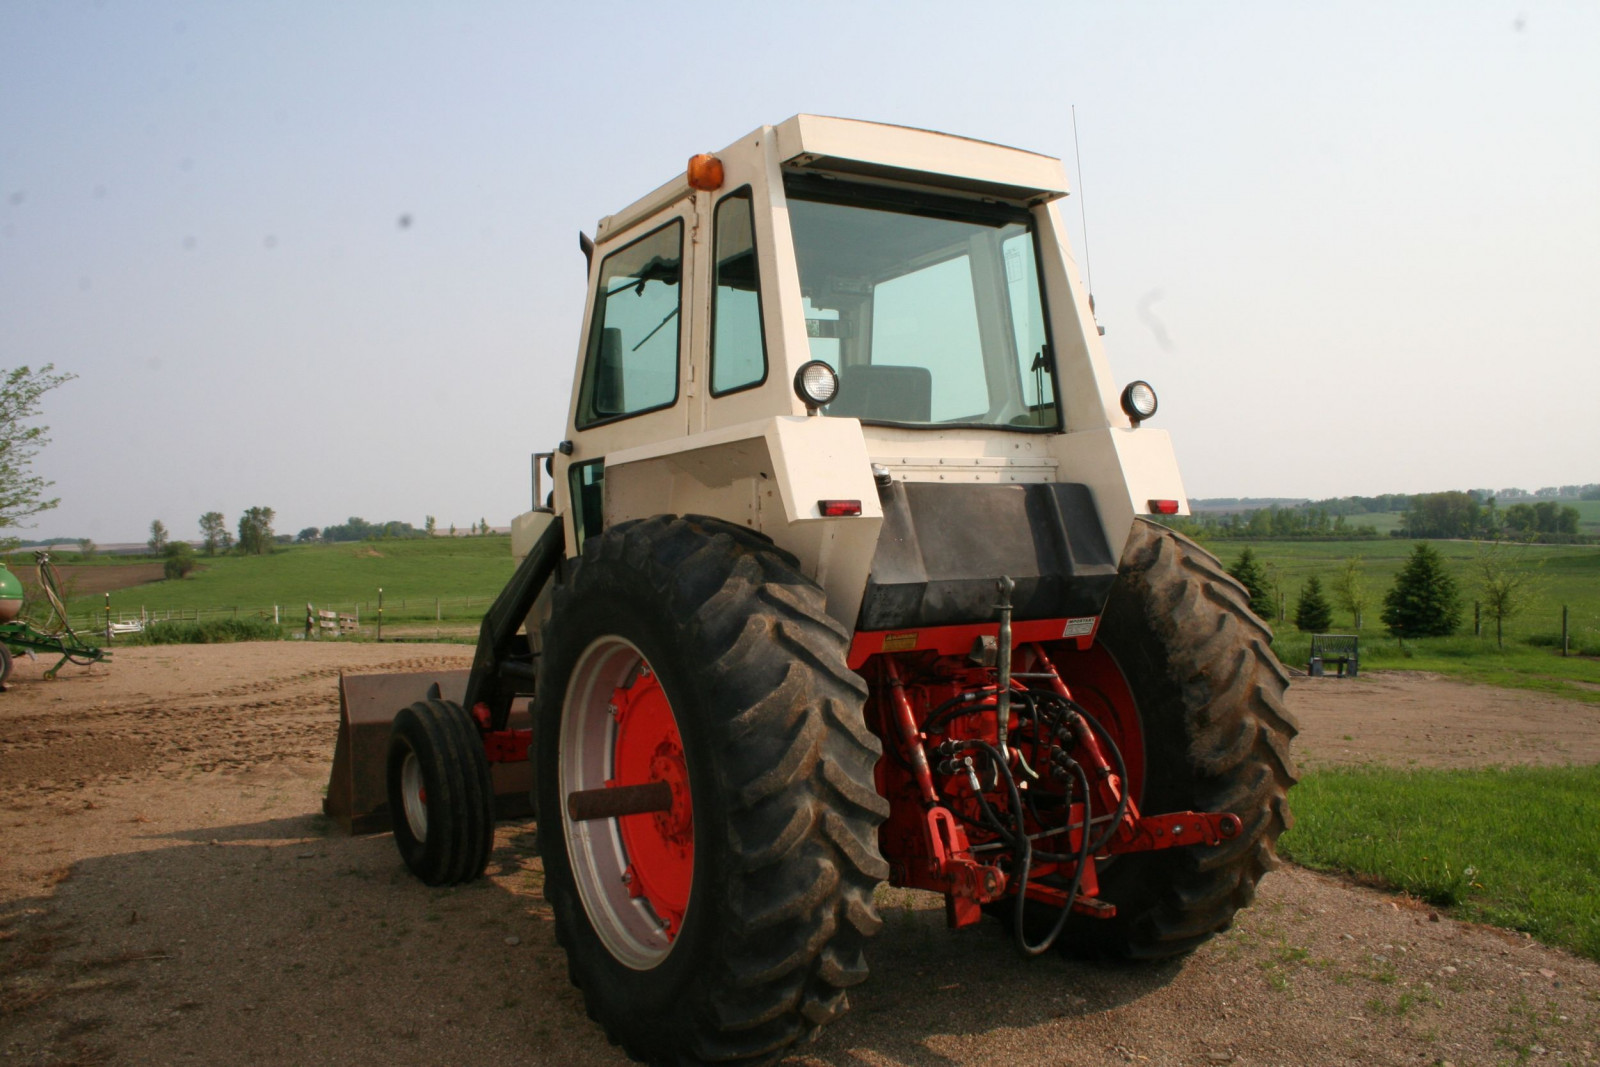 1978 Case 970 Tractor - Image 4